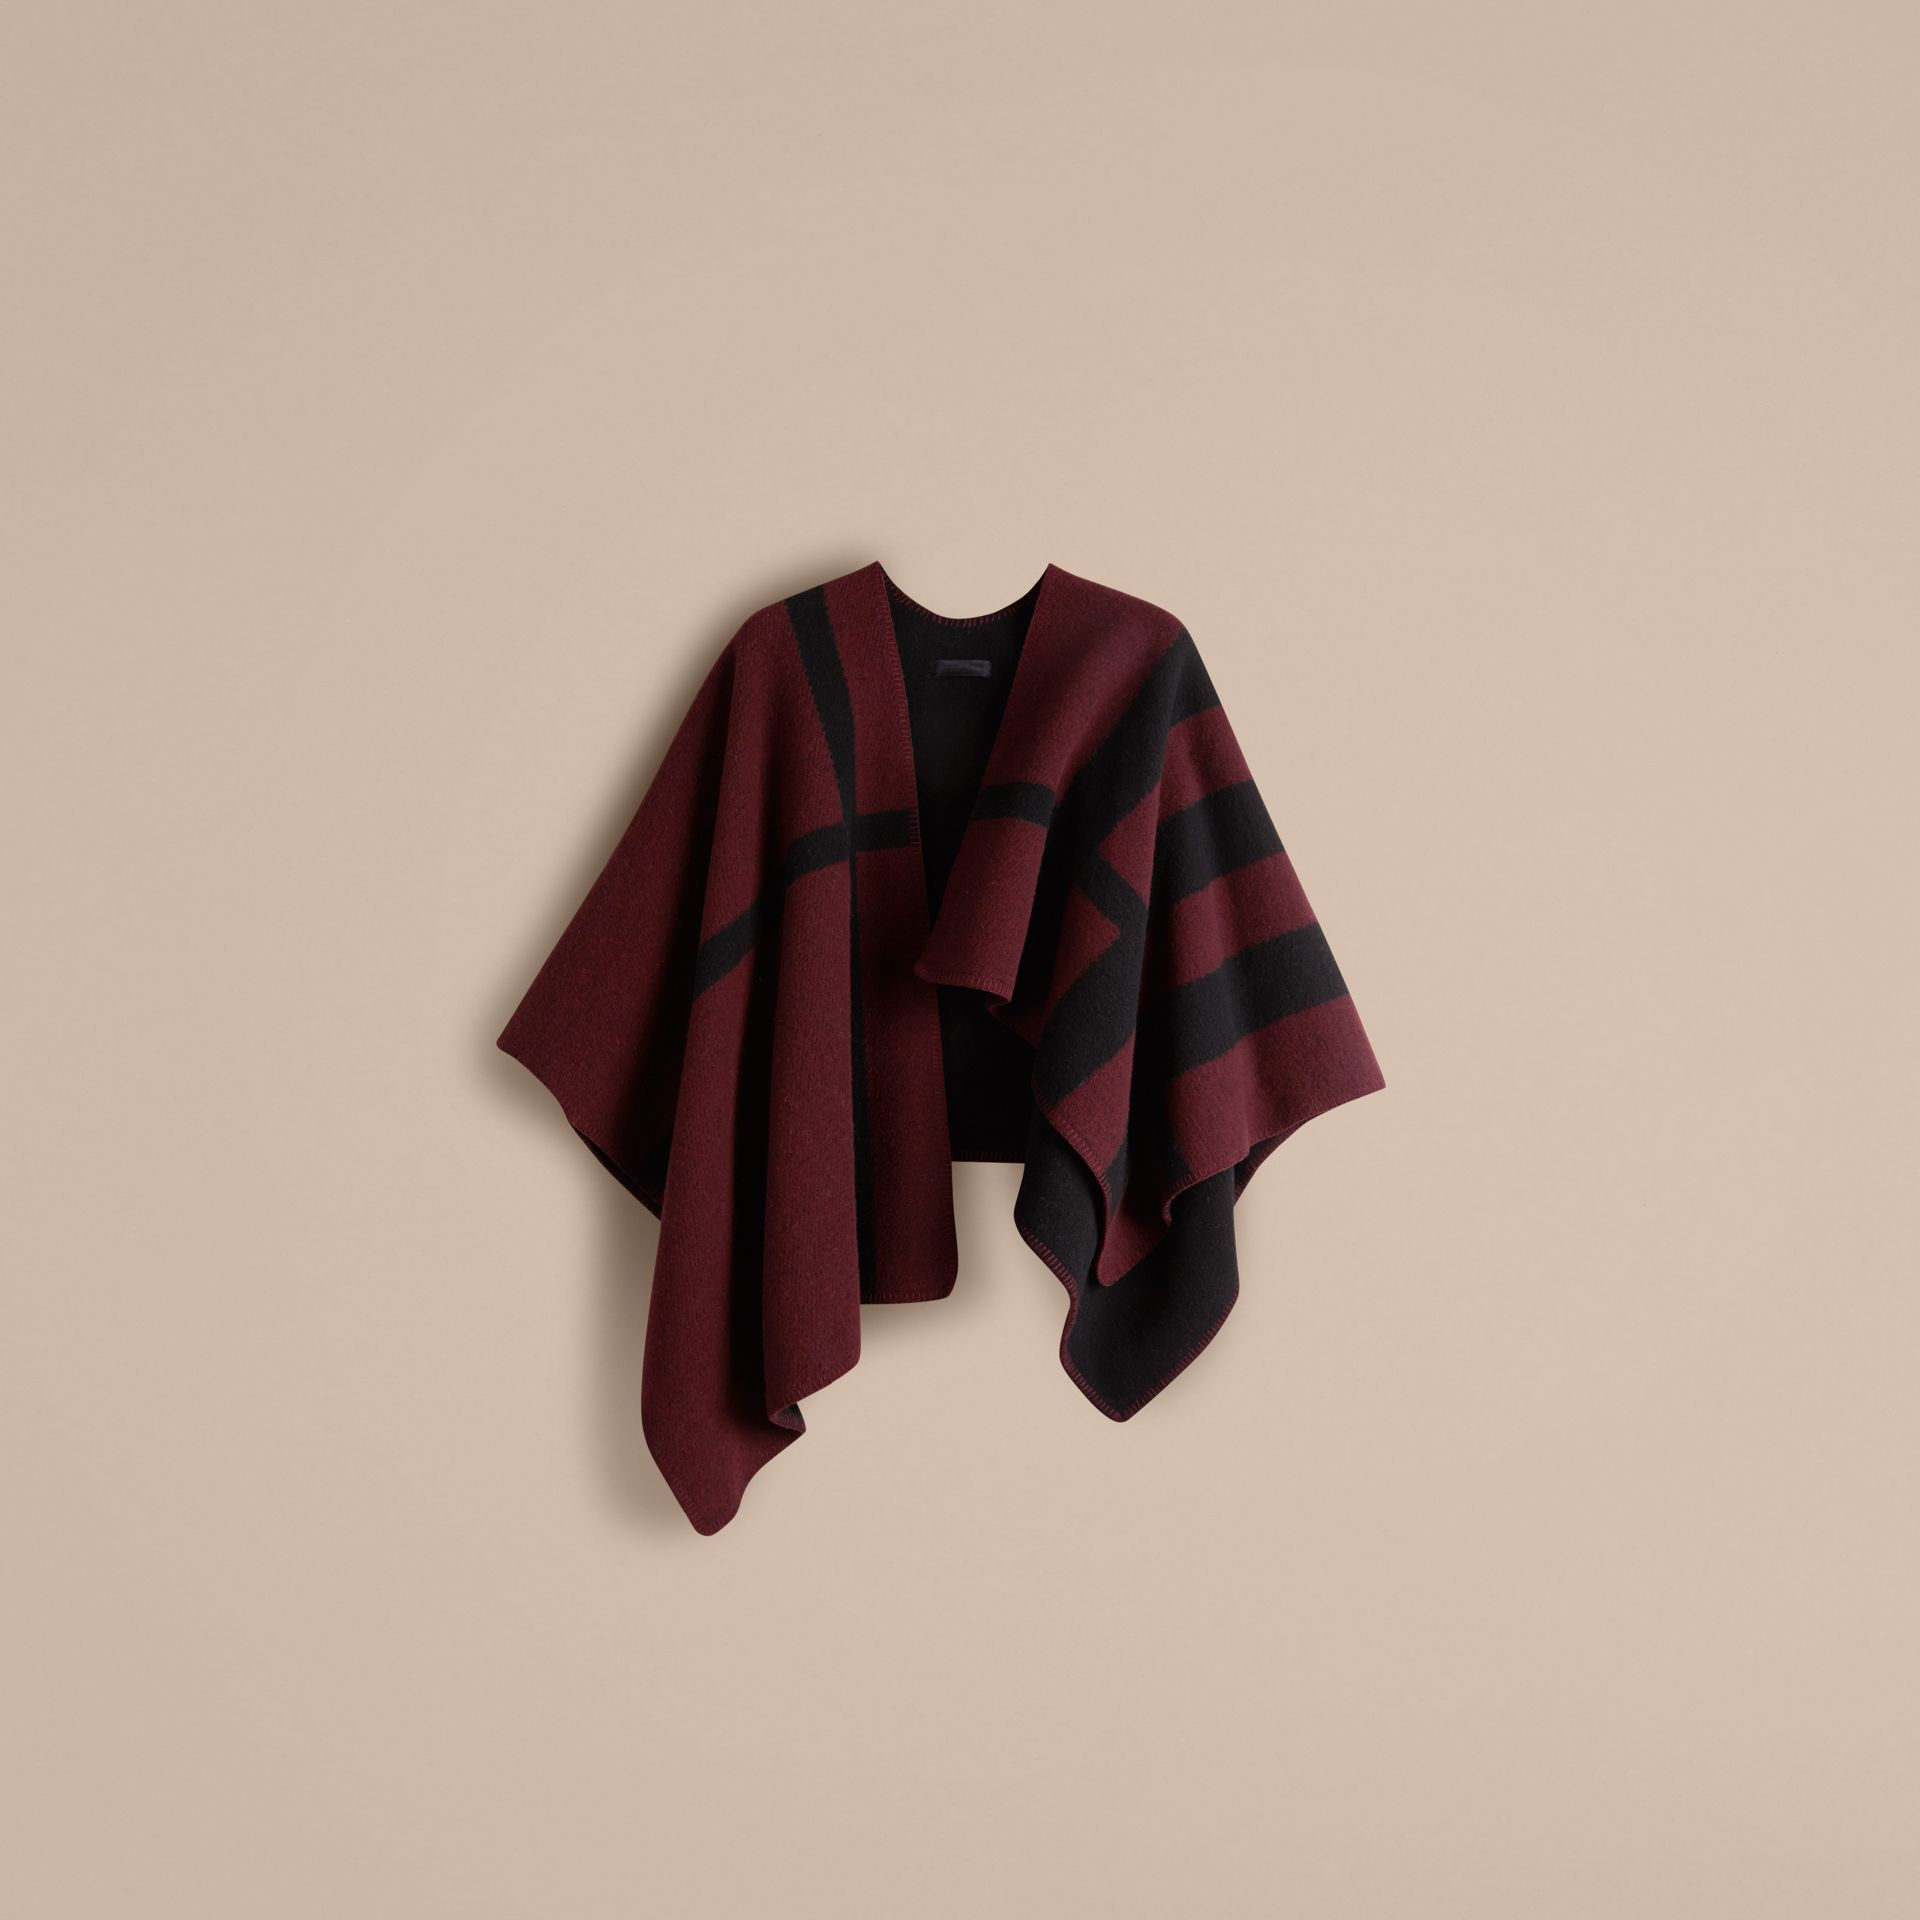 Oxblood Check Wool and Cashmere Blanket Poncho Oxblood - gallery image 3